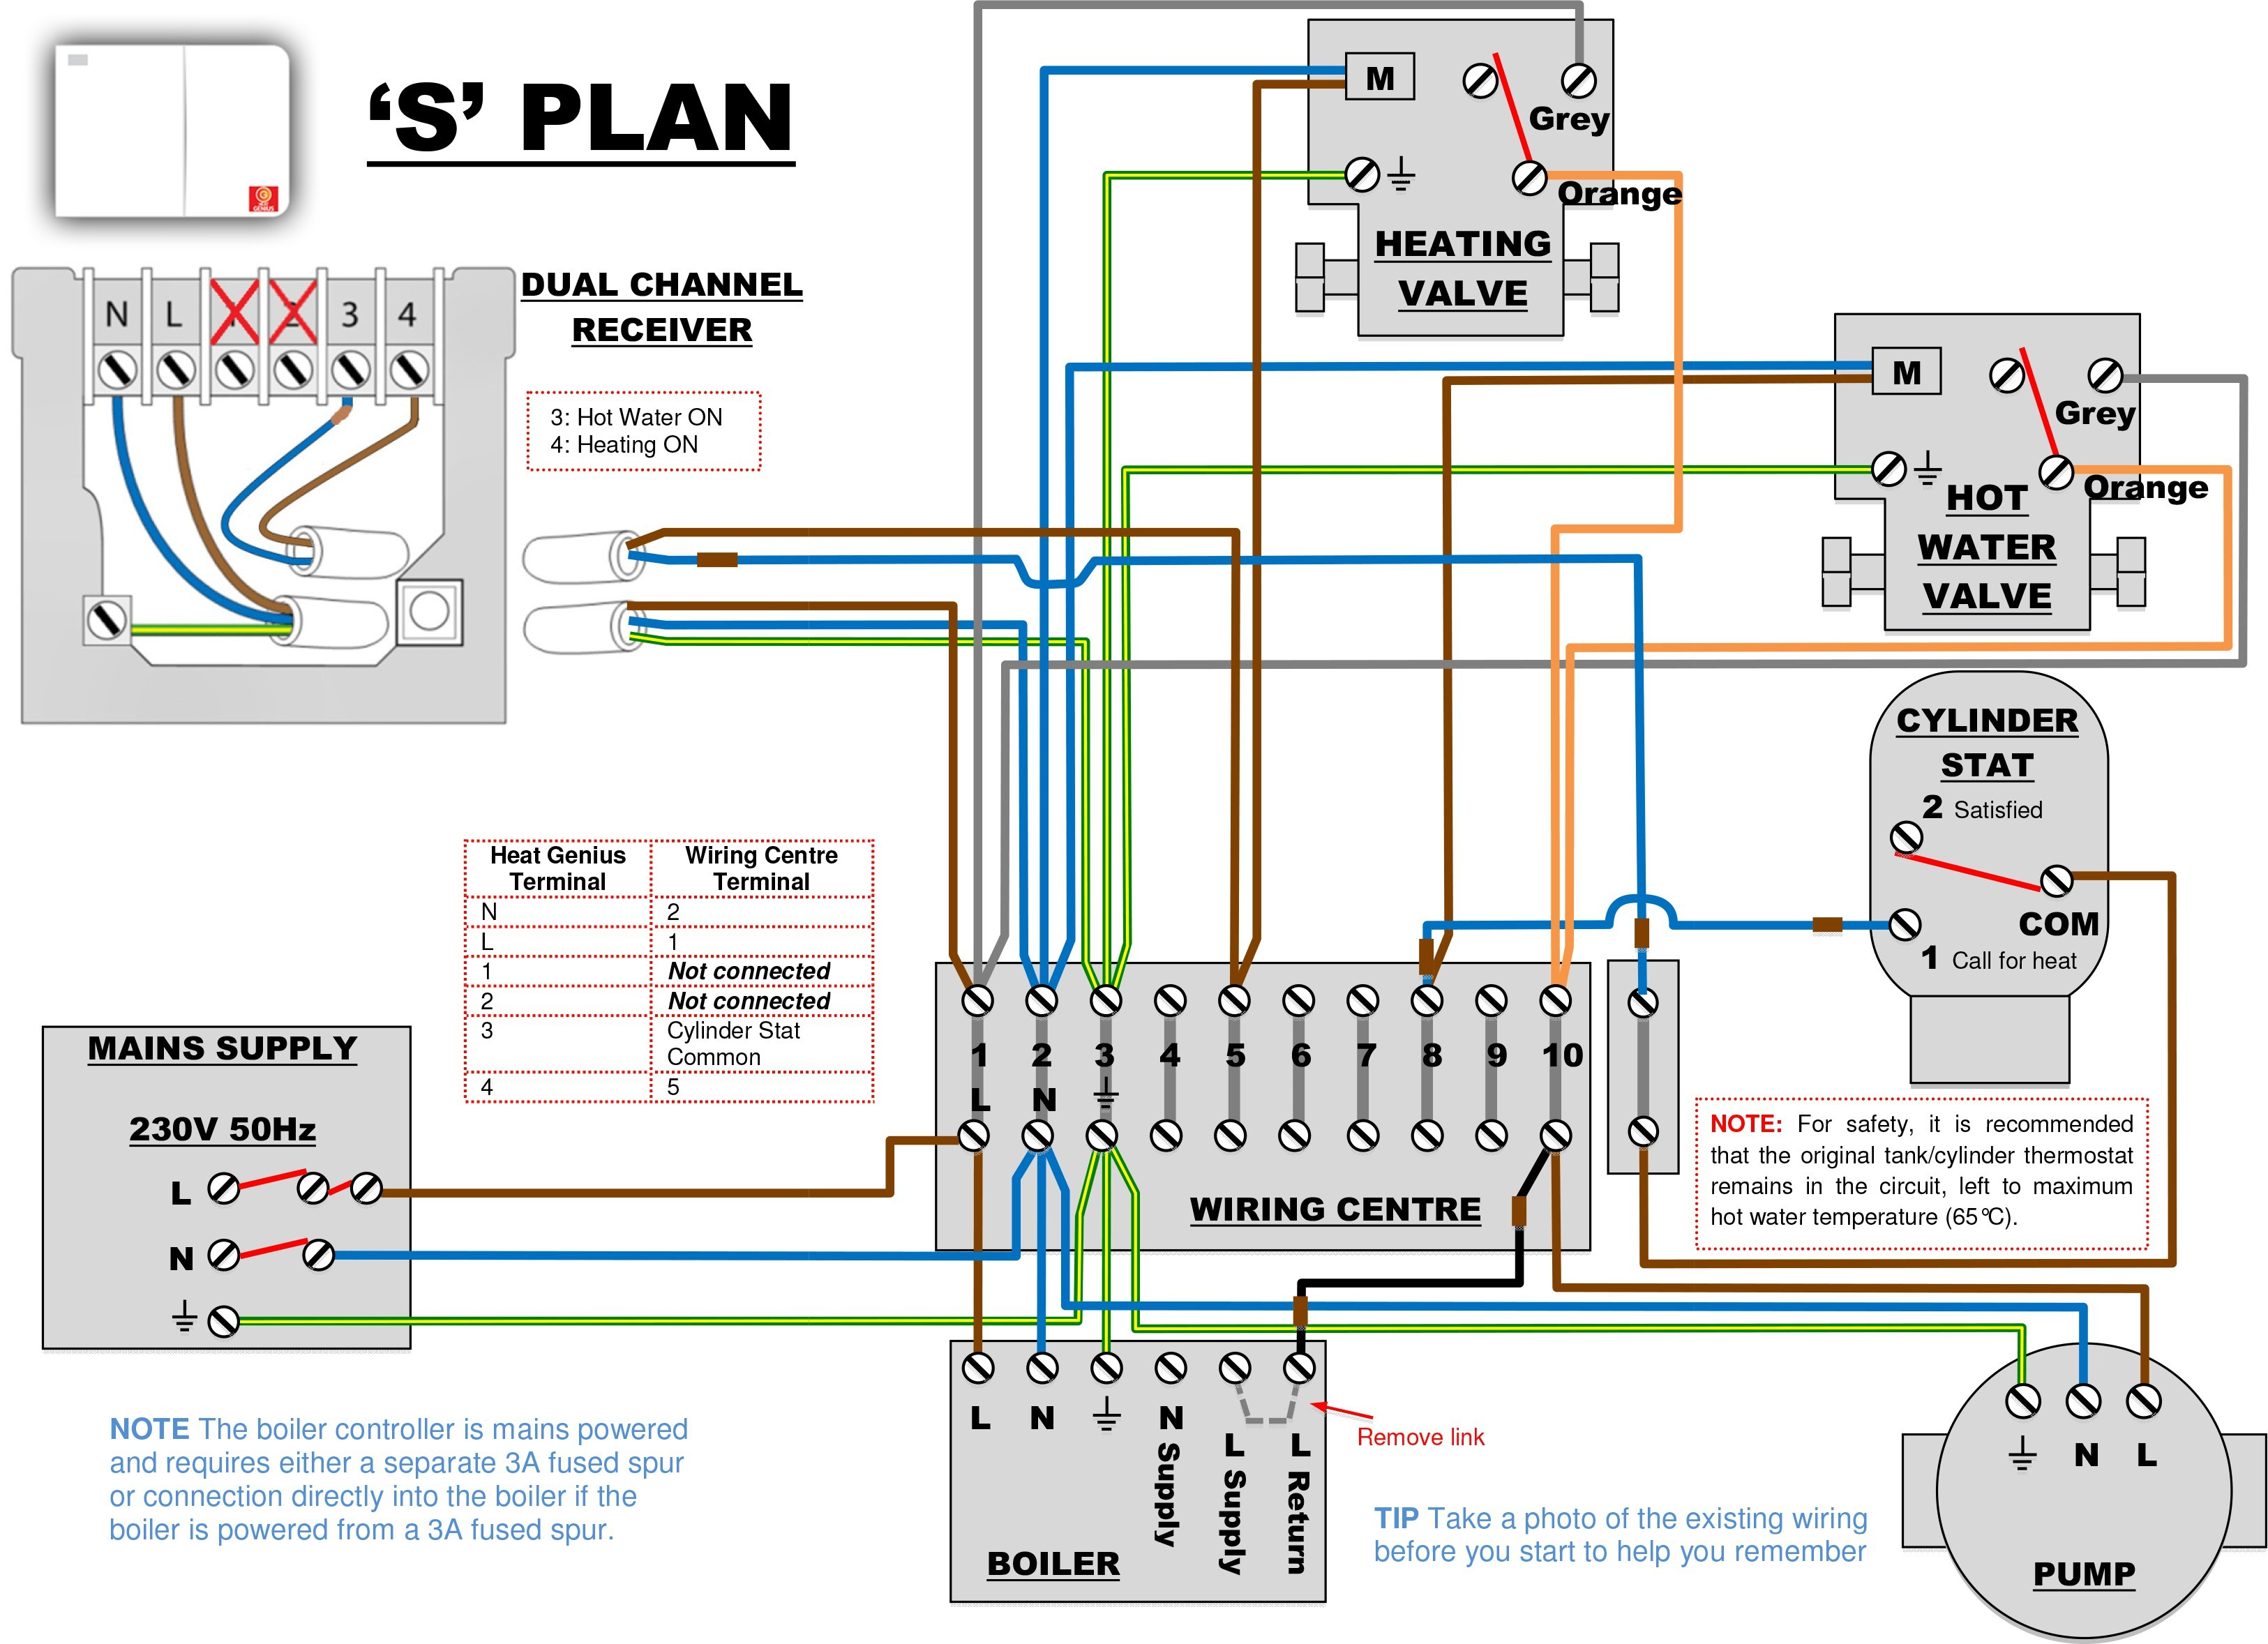 Nest Thermostat Heat Pump Wiring Diagram Heat Pump Thermostat Wiring - Nest Wiring Diagram With Heat Pump